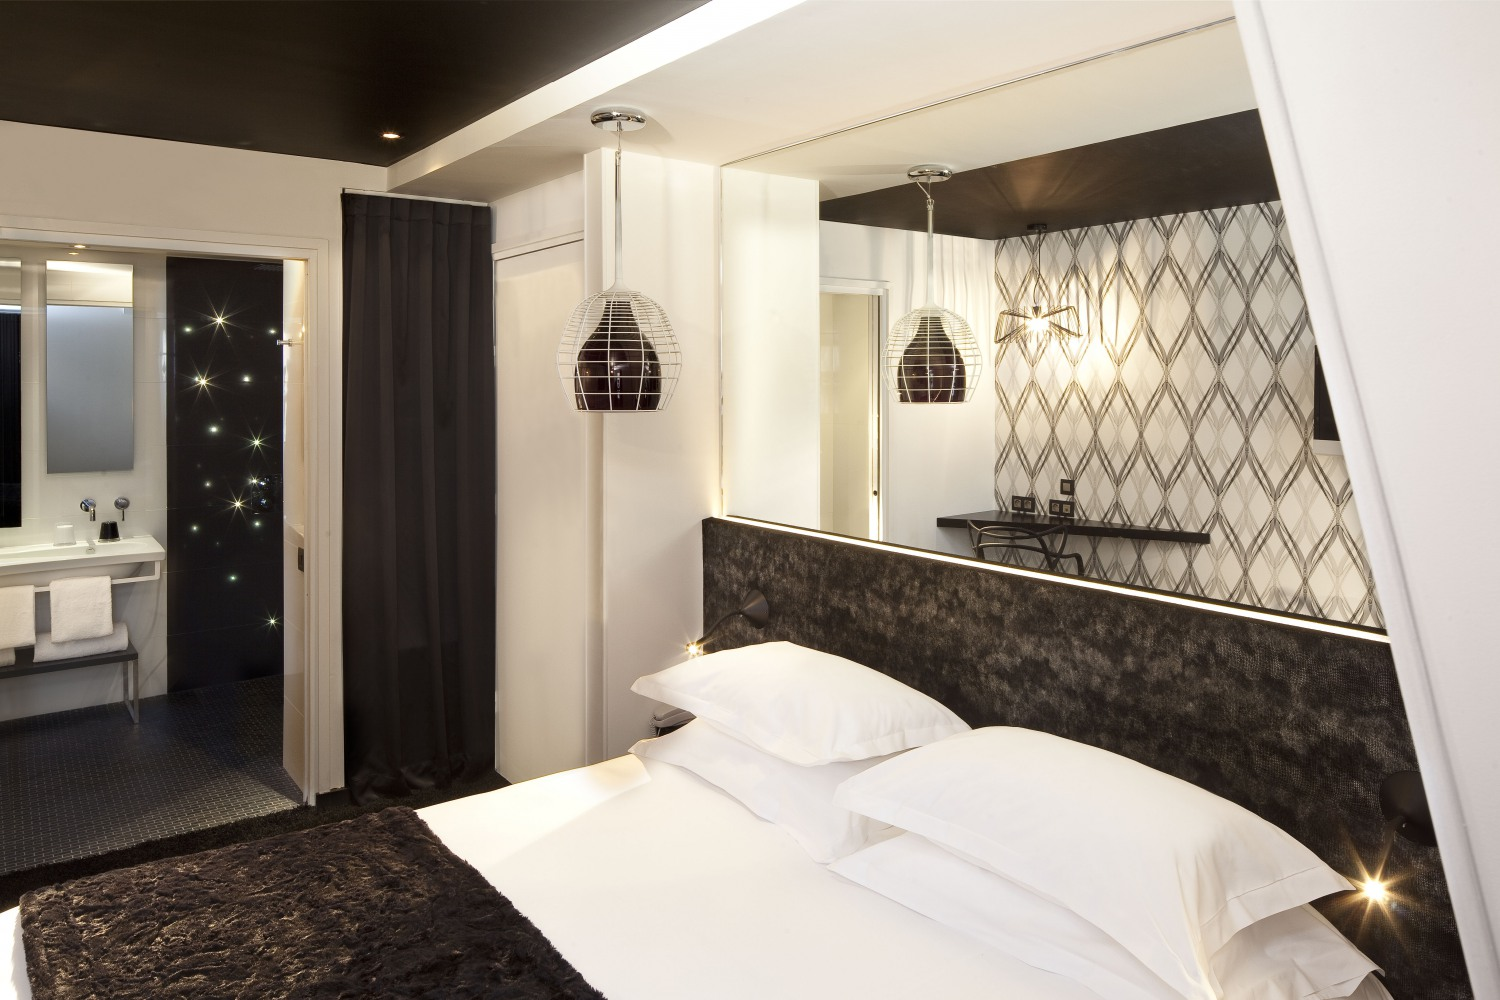 Hotel georgette photo gallery centre georges pompidou for Hotel design 75003